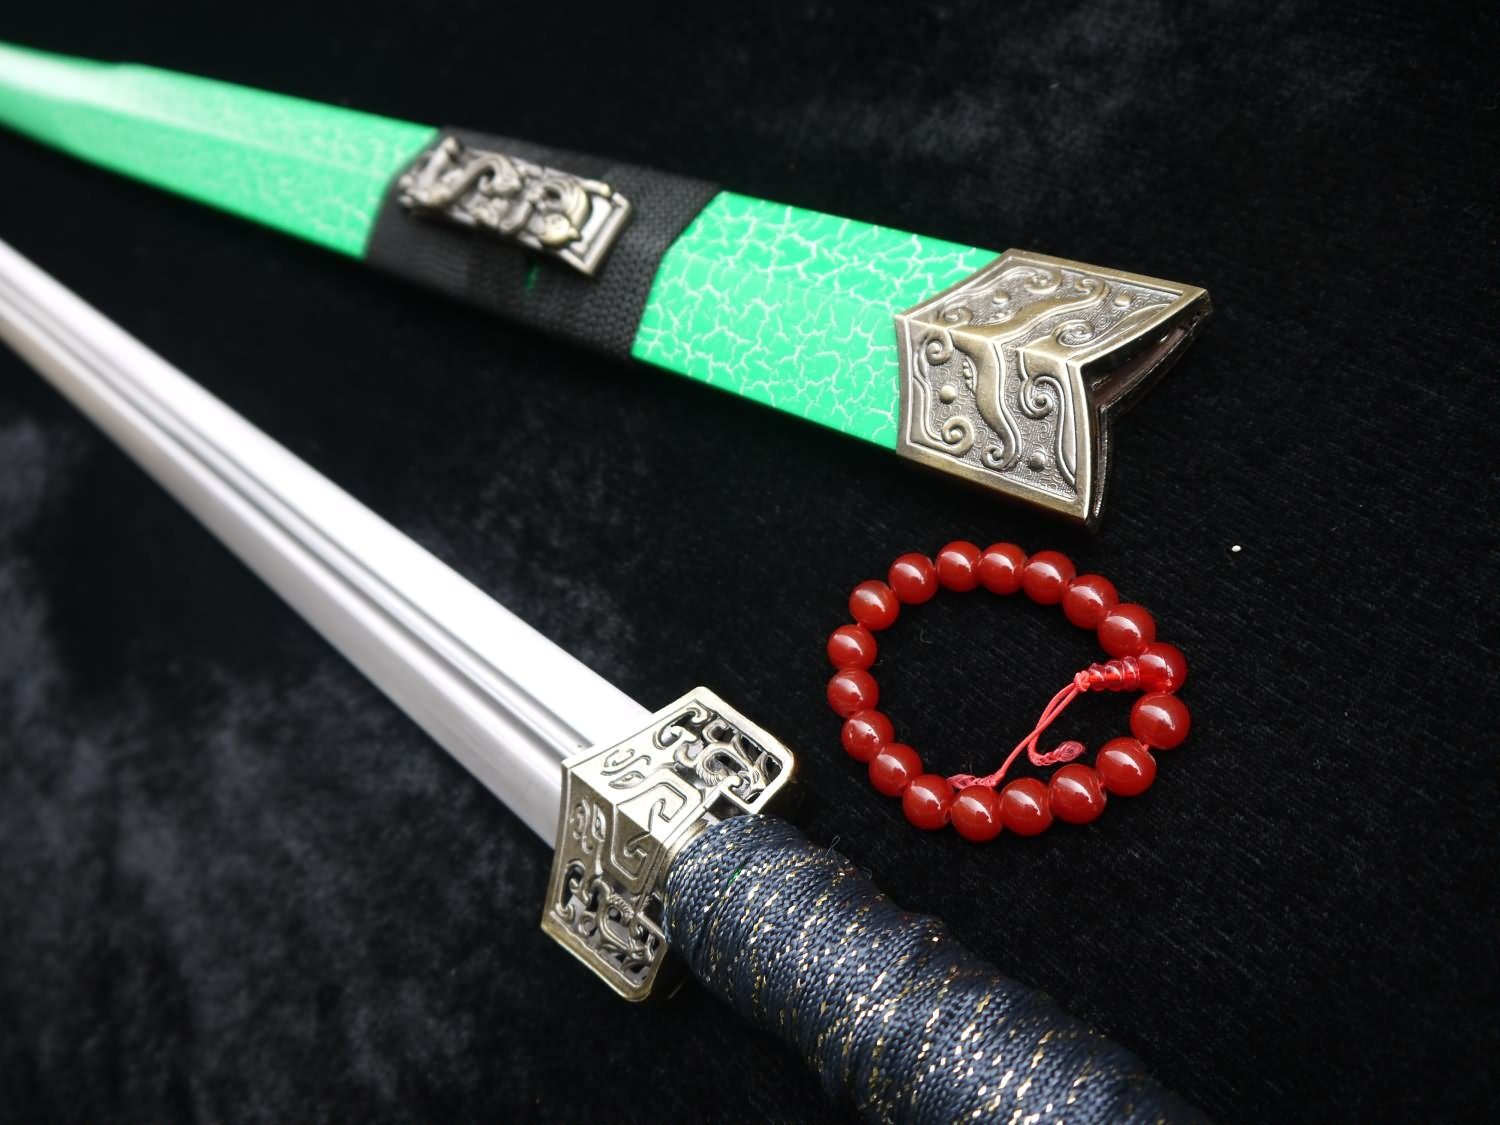 Gifts sword sale Han jian Medium carbon steel blade Green crackle paint scabbard мечи longquan sword